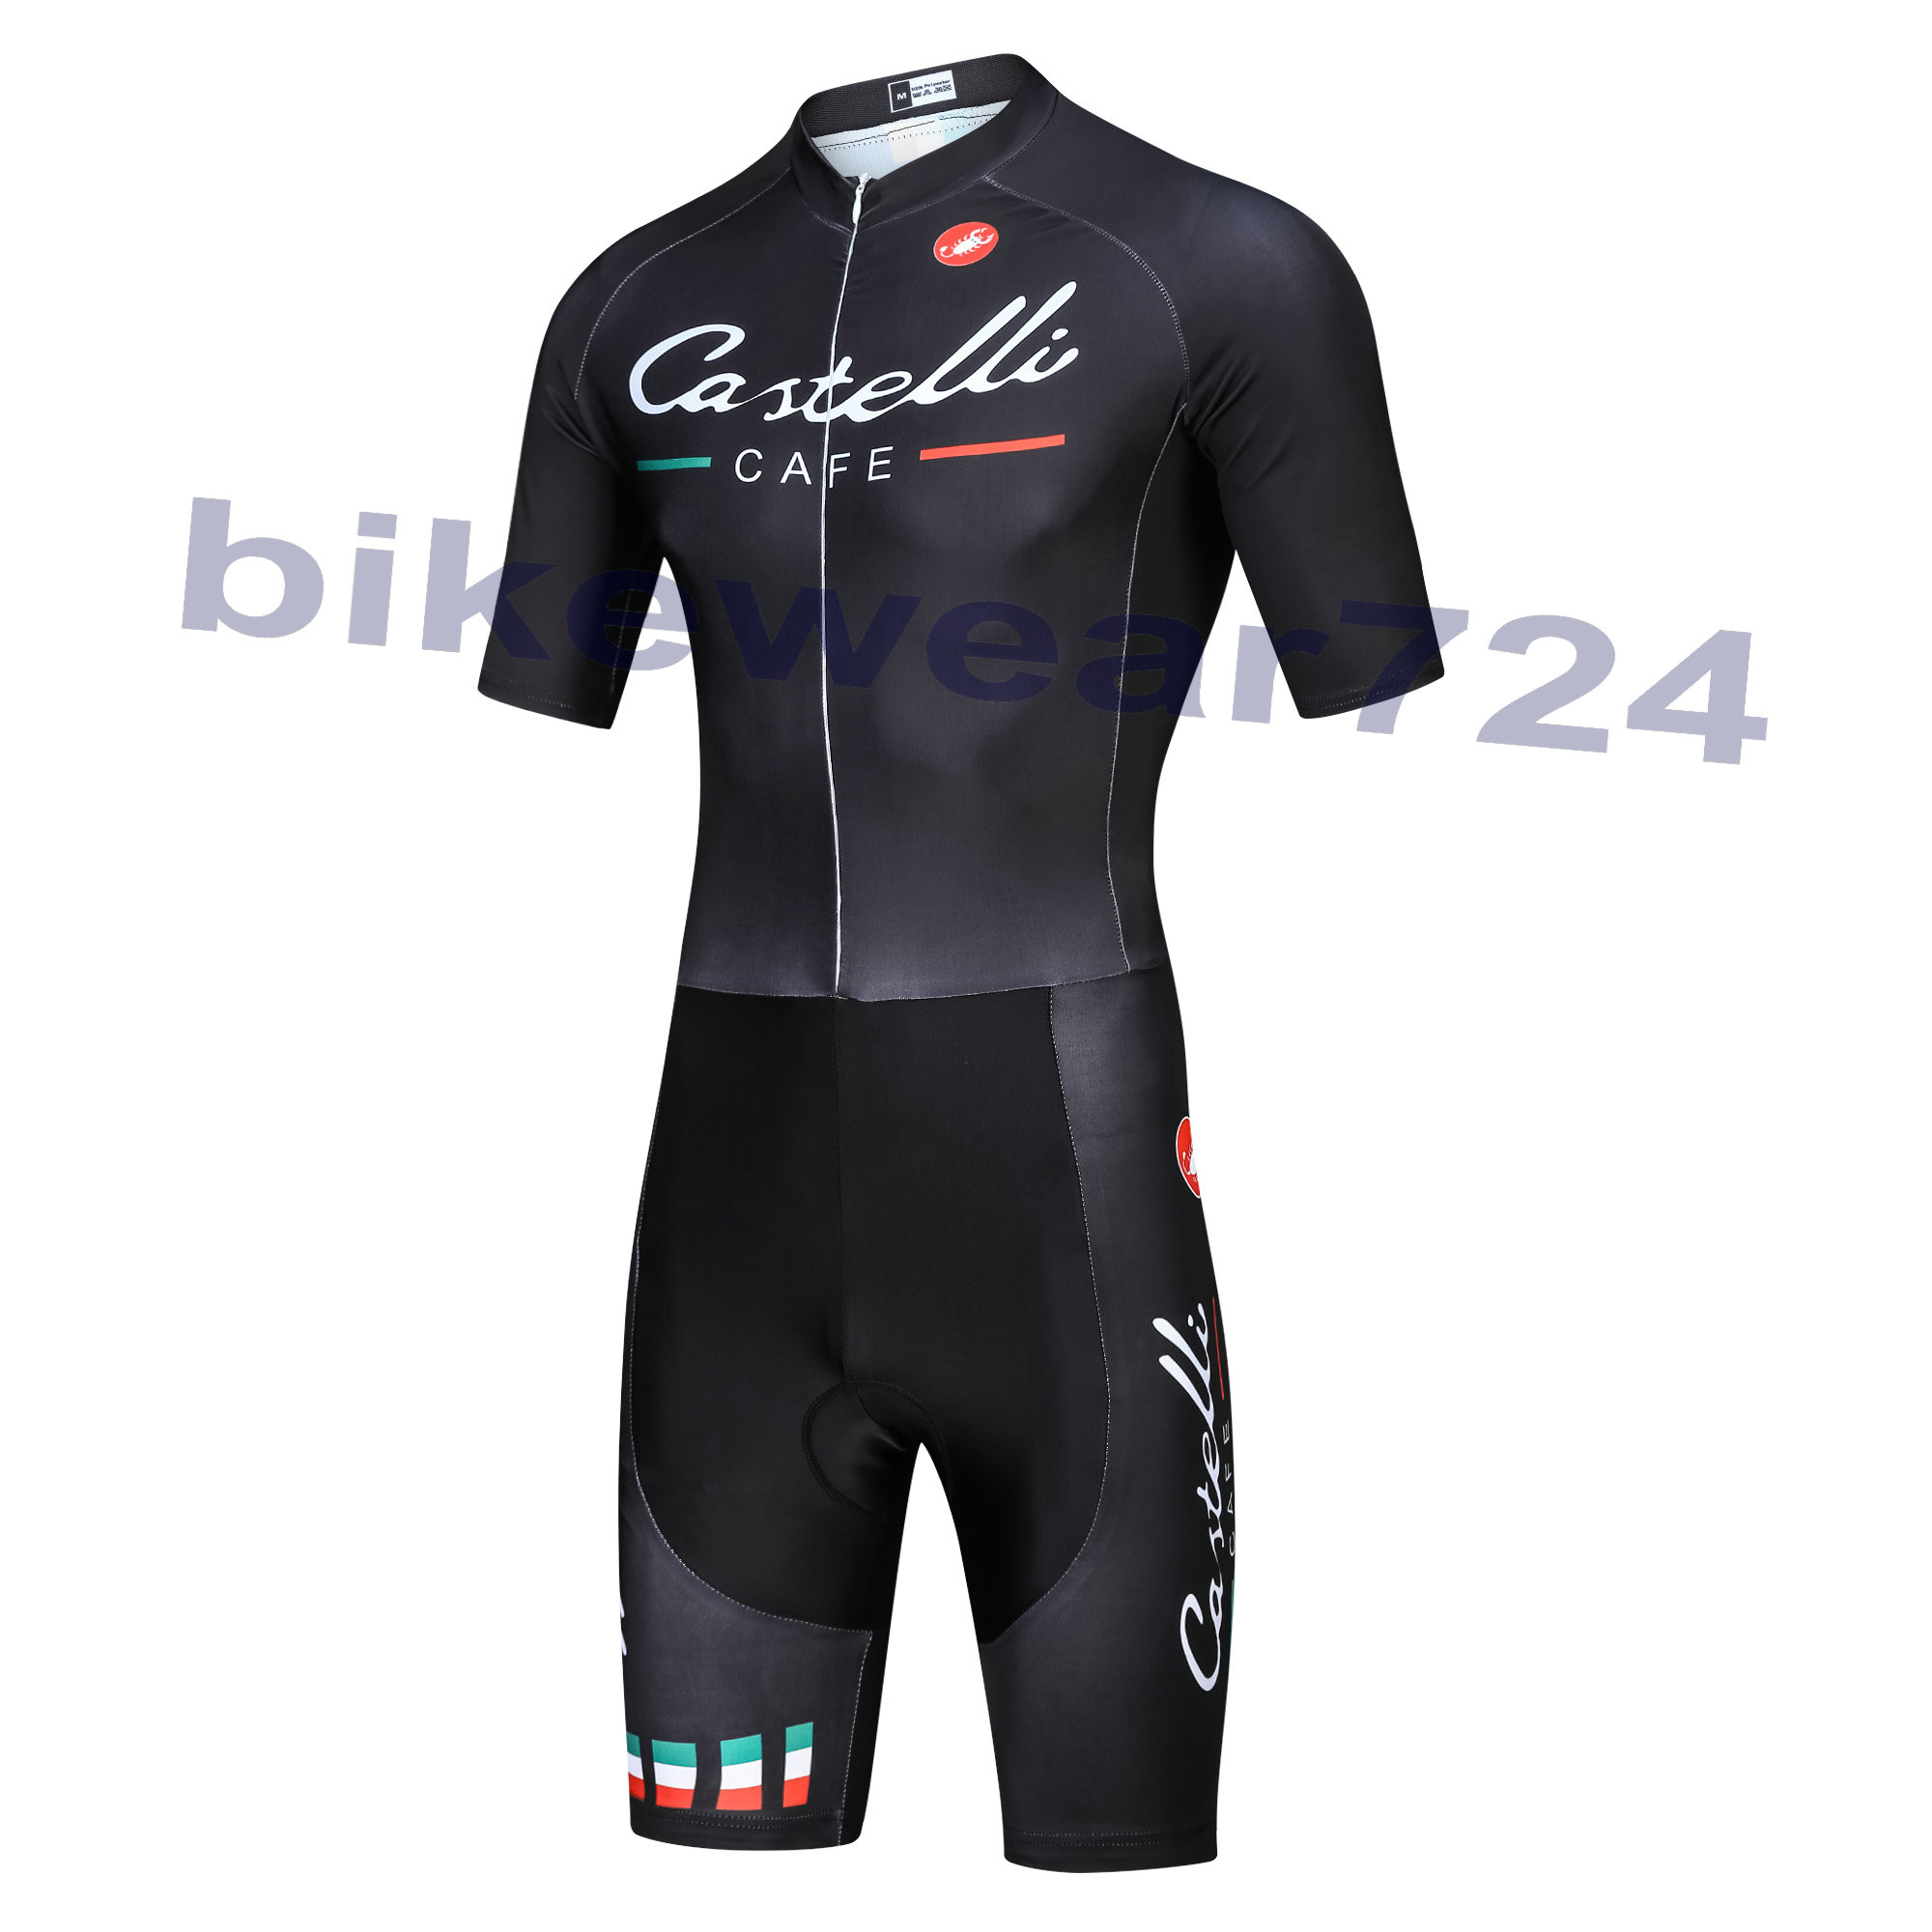 CASTELLI (#1601JS) Cycling Bike Short sleeve Jump Suit Kit Size XS/S/M/L/XL/XXL/XXXL